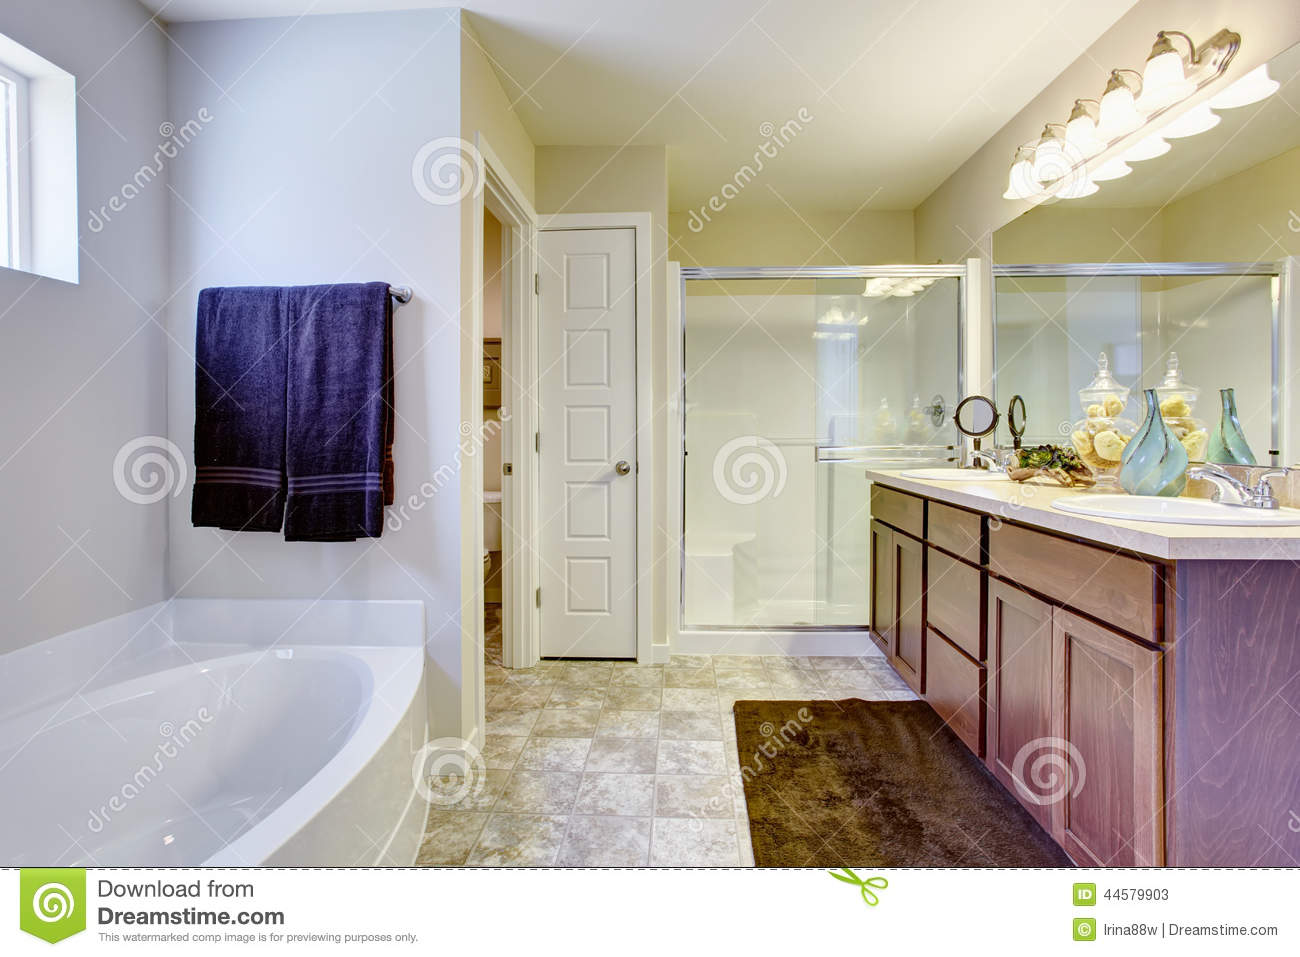 Refreshing White Bathroom With Glass Door And Bath Tub Stock Image